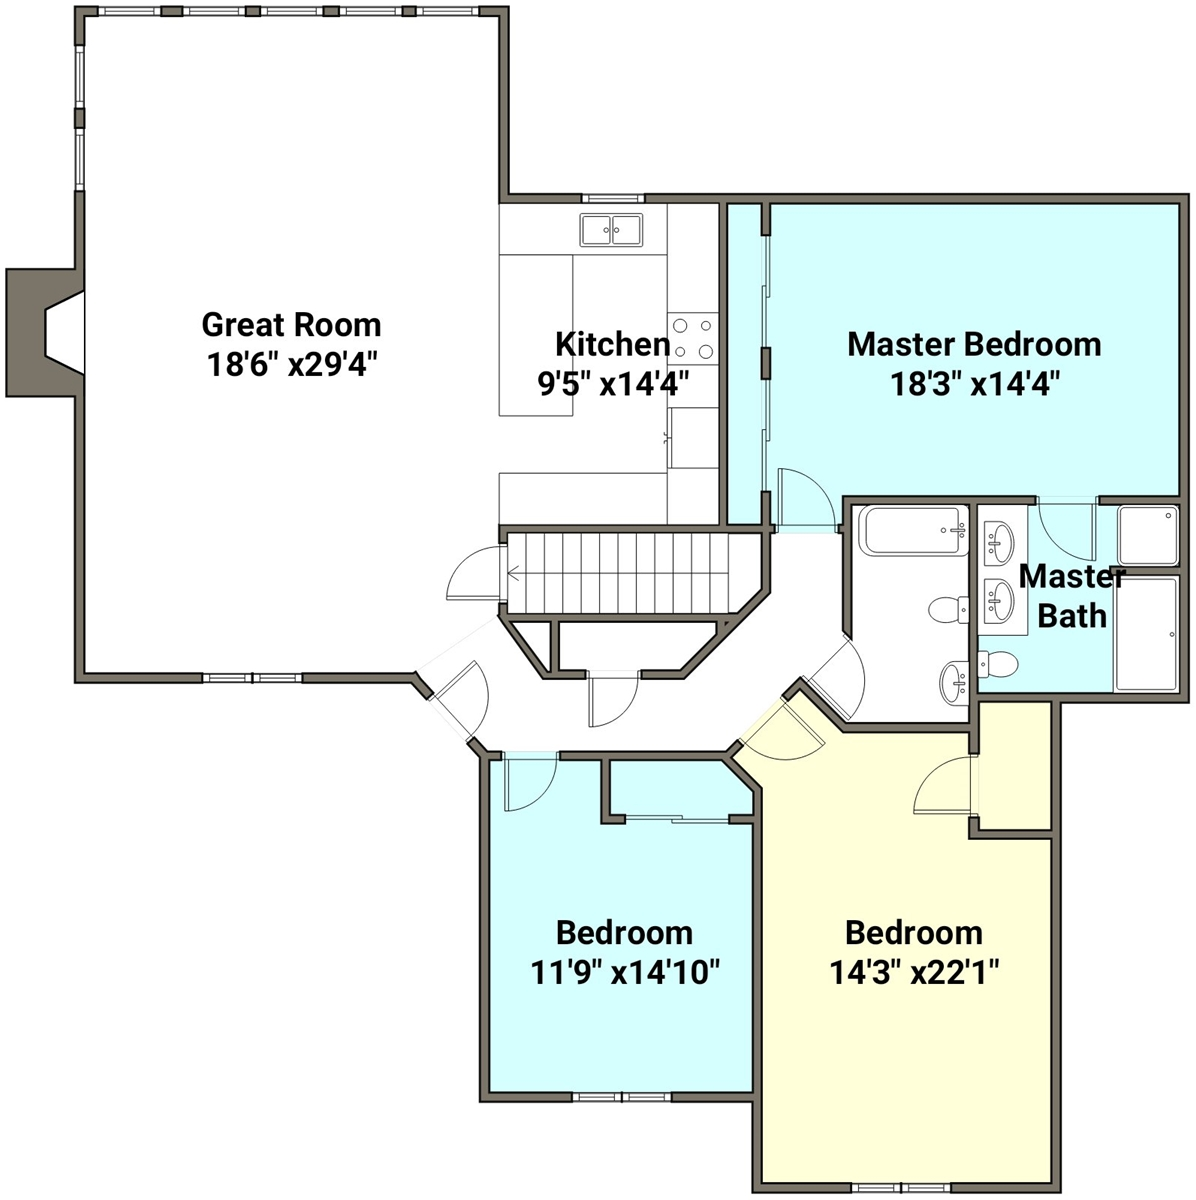 Floor Plan for Almost Heaven